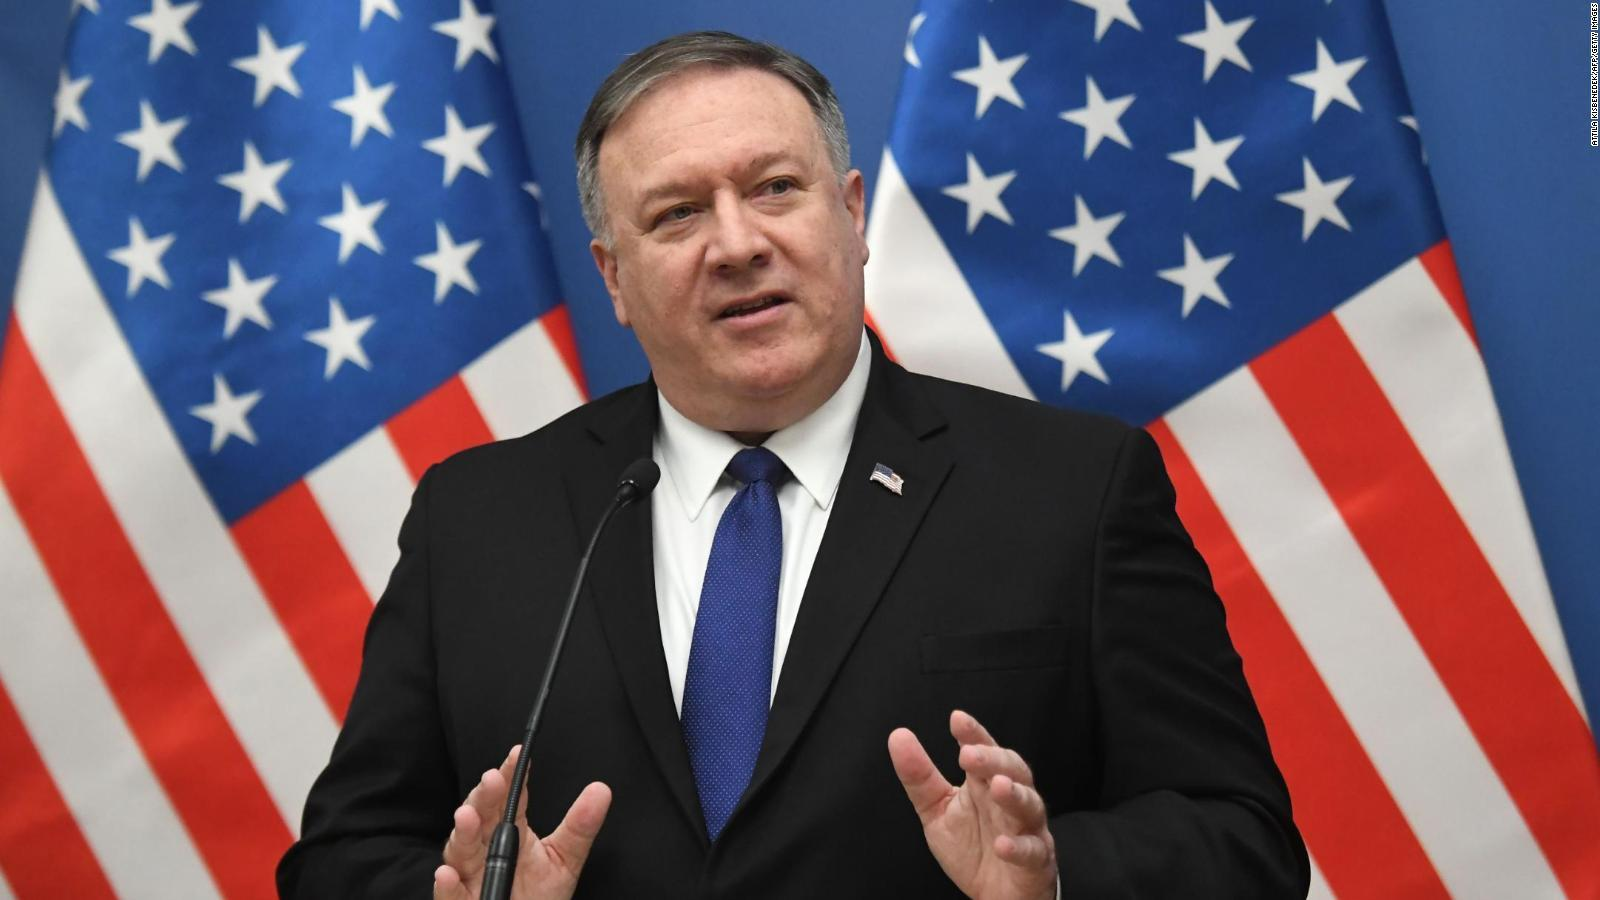 Secretary of State Pompeo says US prepared to talk to Iran